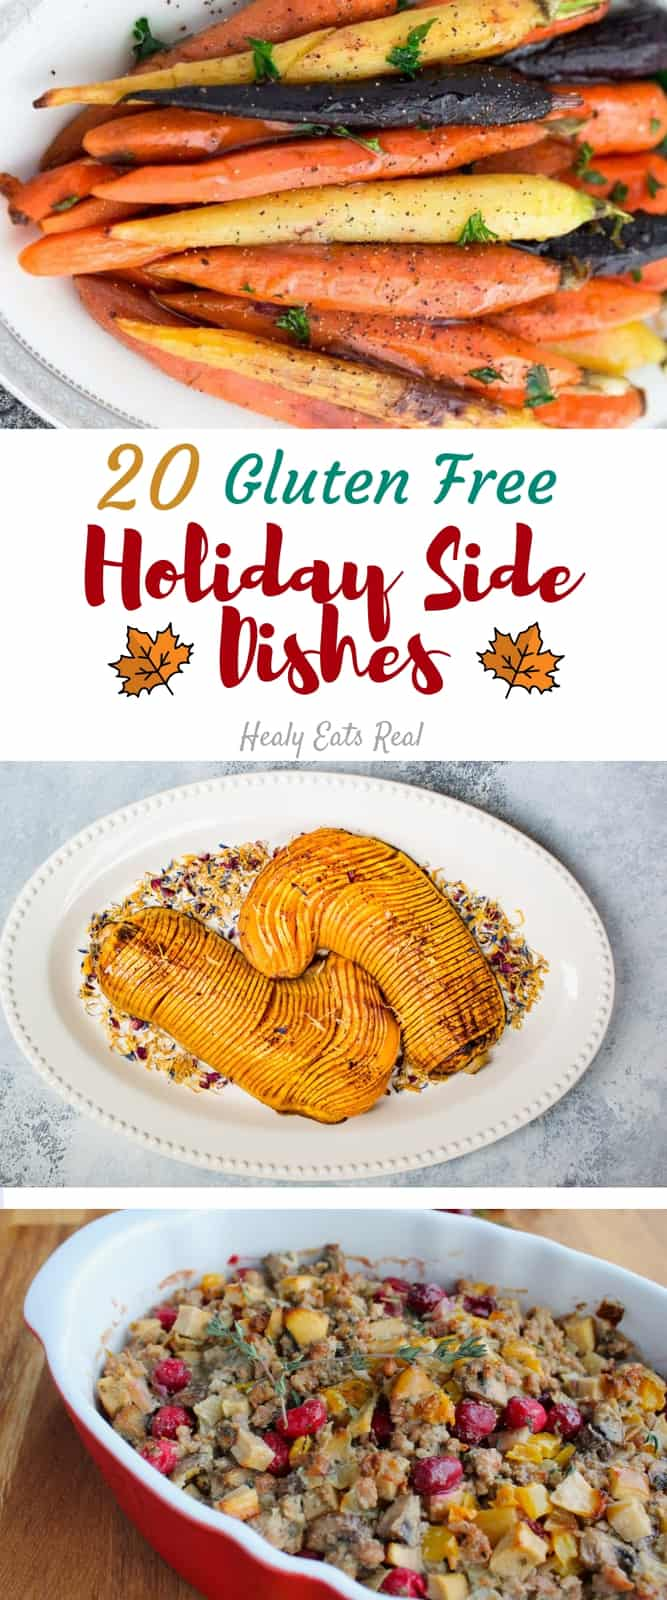 19 Thanksgiving Sides That Only Take 20 Minutes Total () 19 Thanksgiving Sides That Only Take 20 Minutes Total () new photo